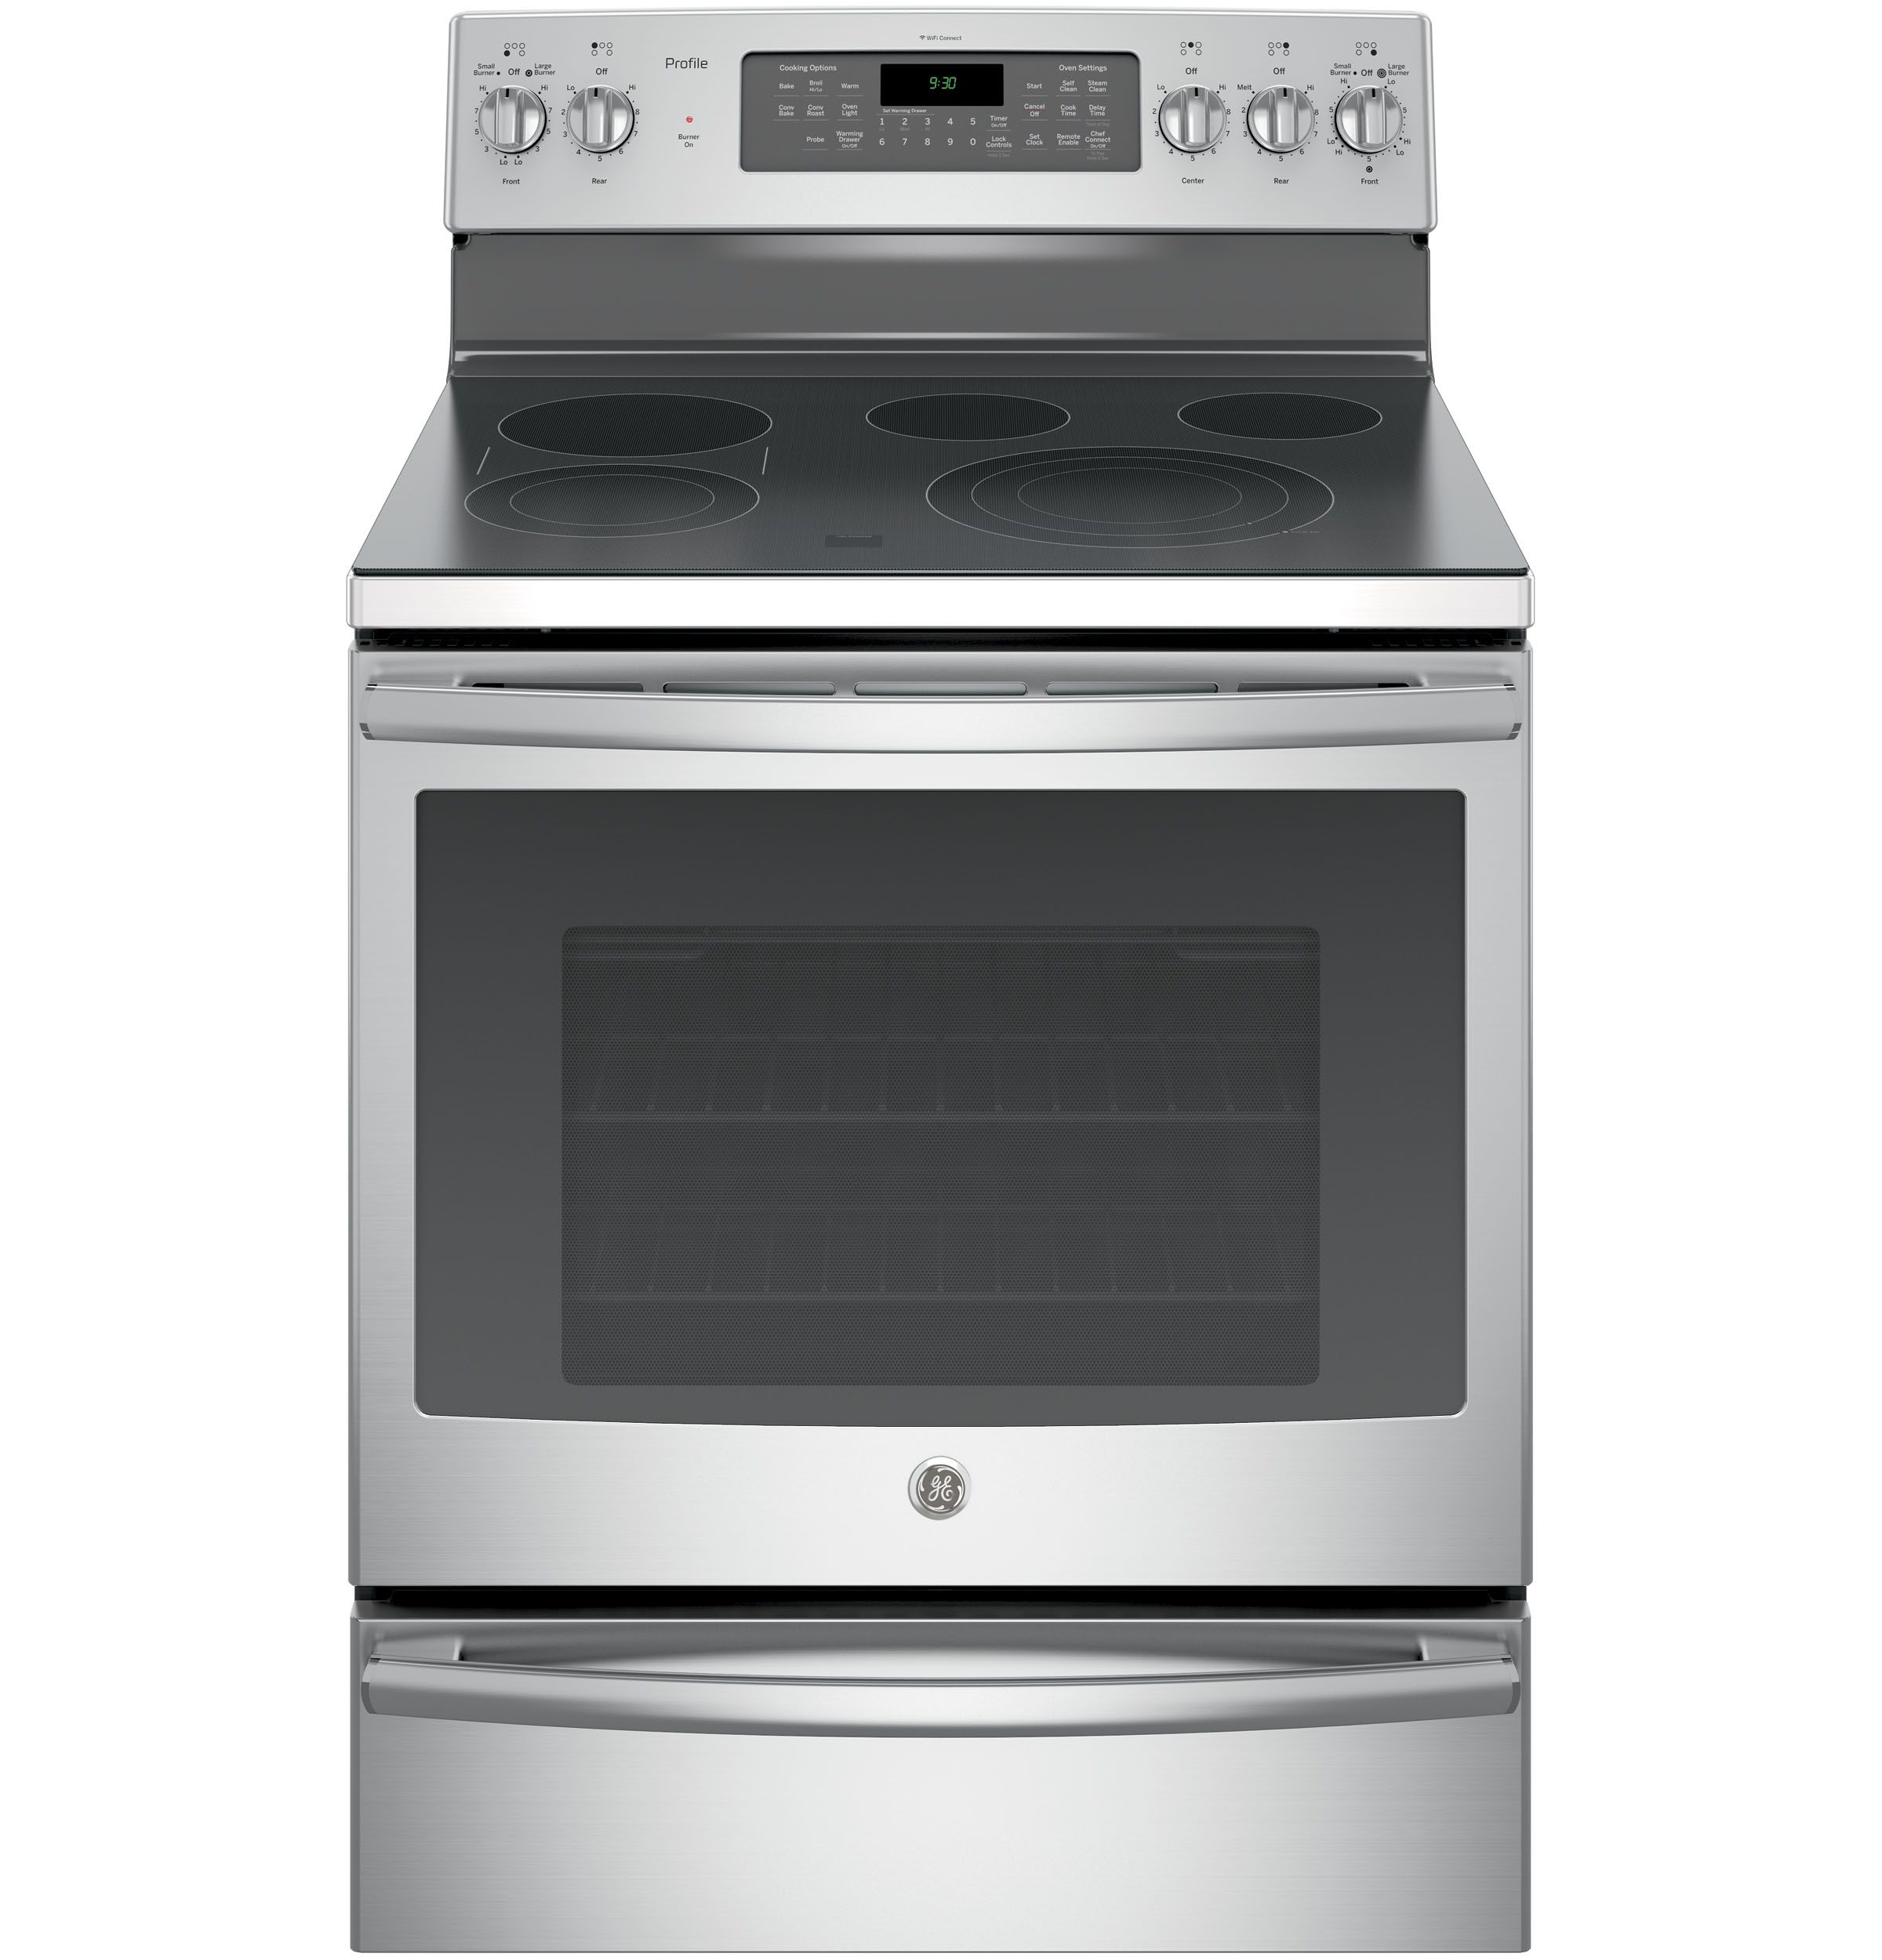 Ge Profile Series 30 Free Standing Electric Convection Range With Warming Drawer Al Induction Range Convection Range Freestanding Electric Ranges